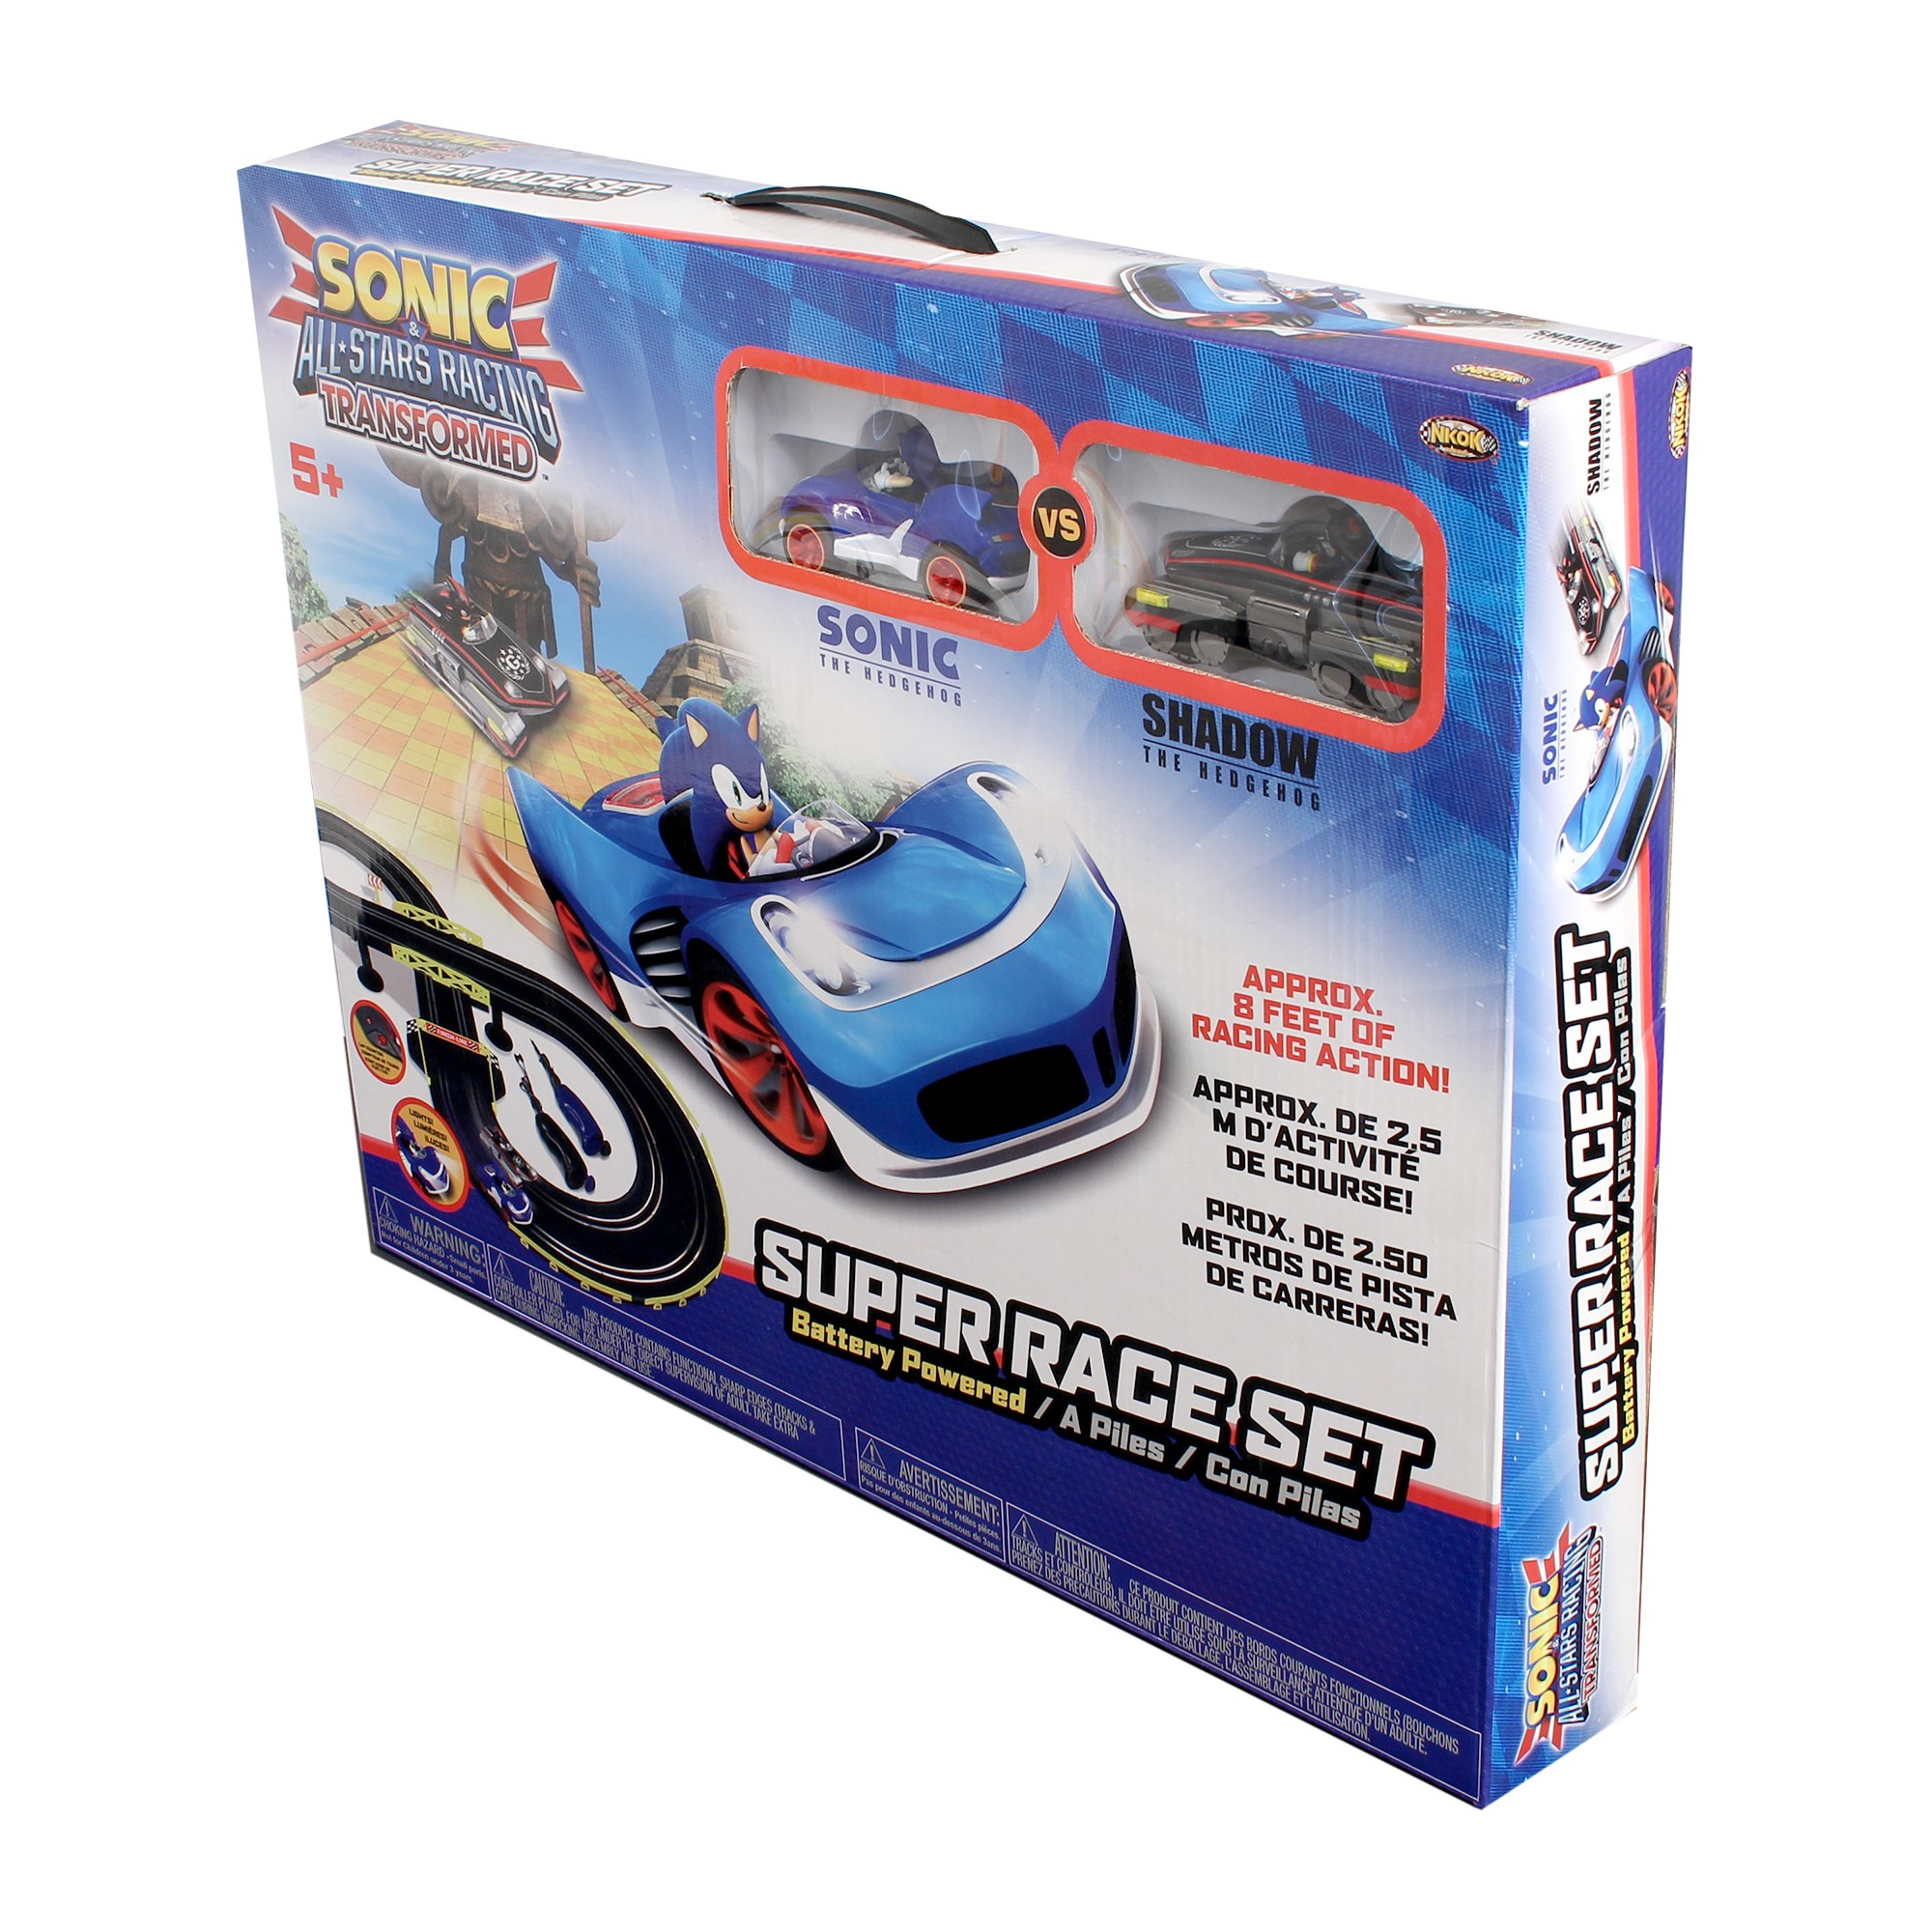 Nkok Rc Sonic The Hedgehog All Stars Racing Transformed Slot Slot Car Sets Sonic Shadow Racing